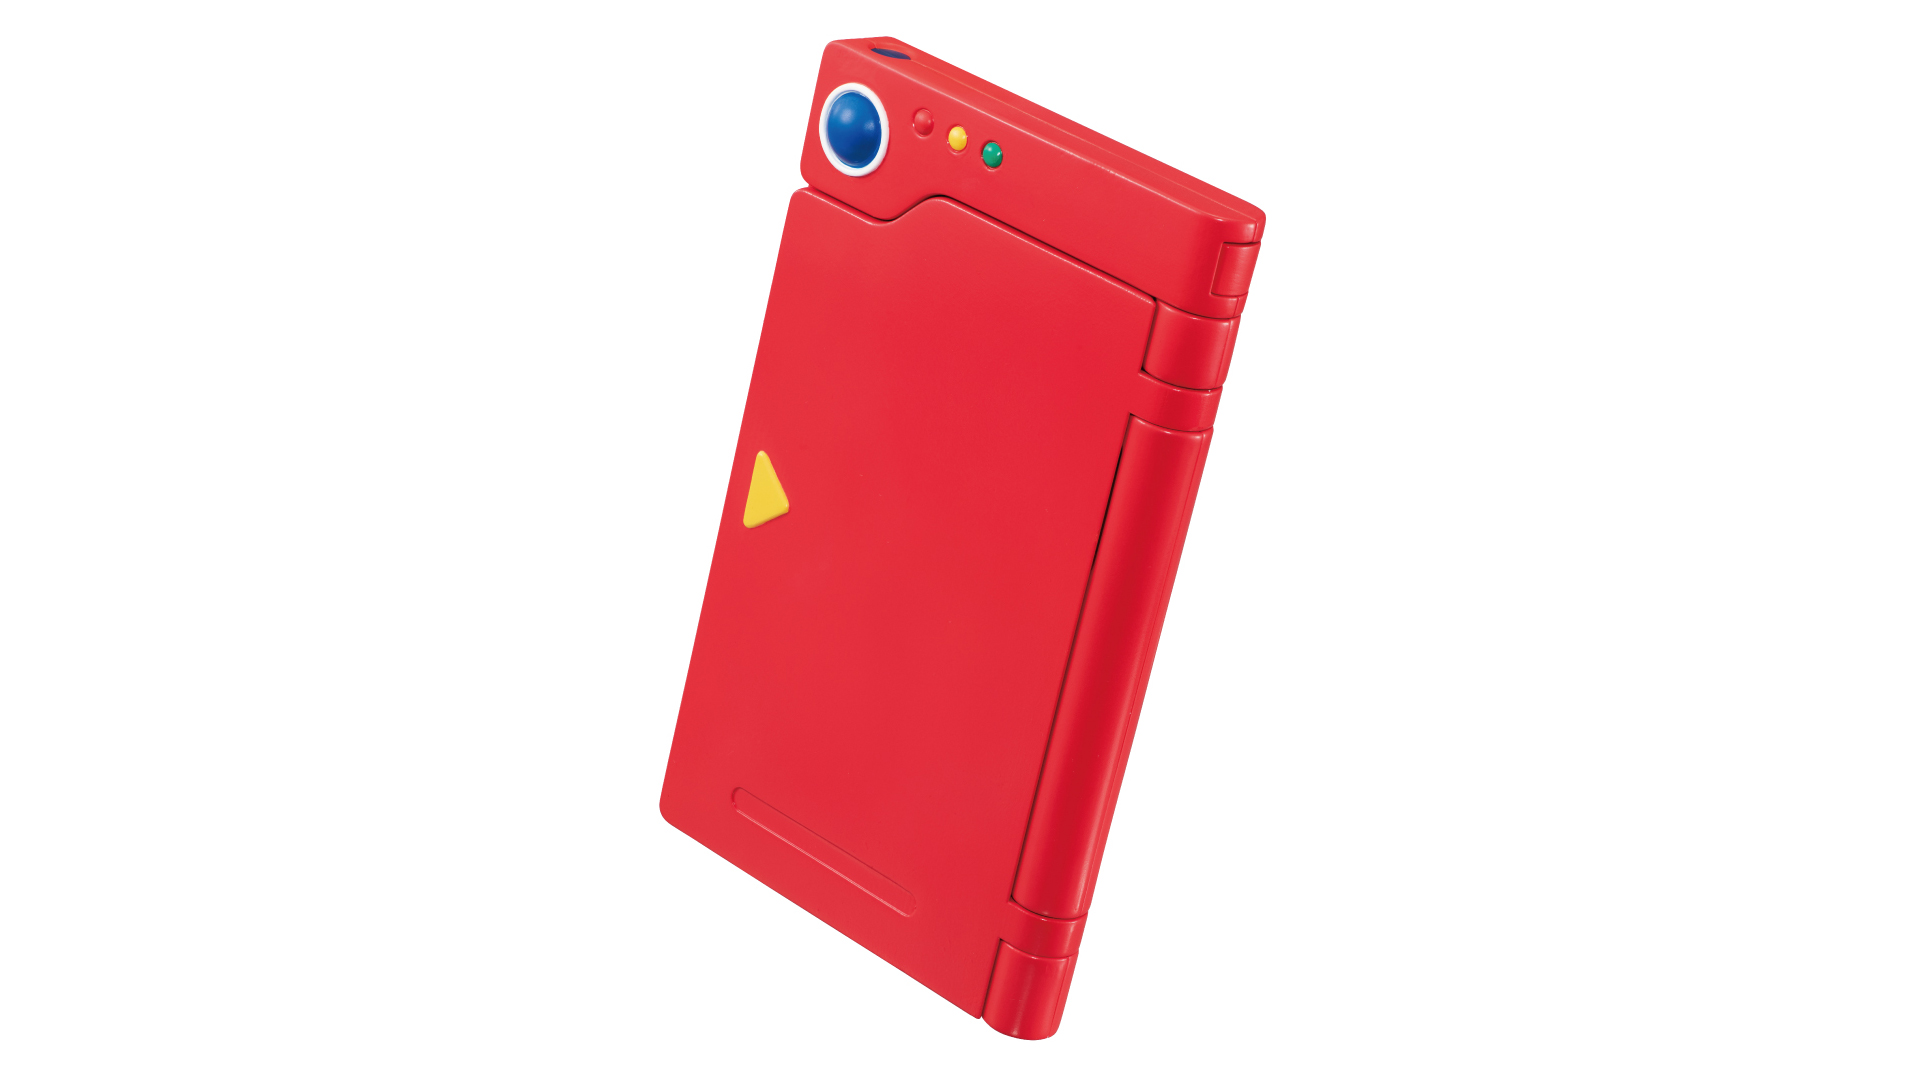 Turn your iPhone into a Pokédex with this official Pokémon phone case   Digital Camera World